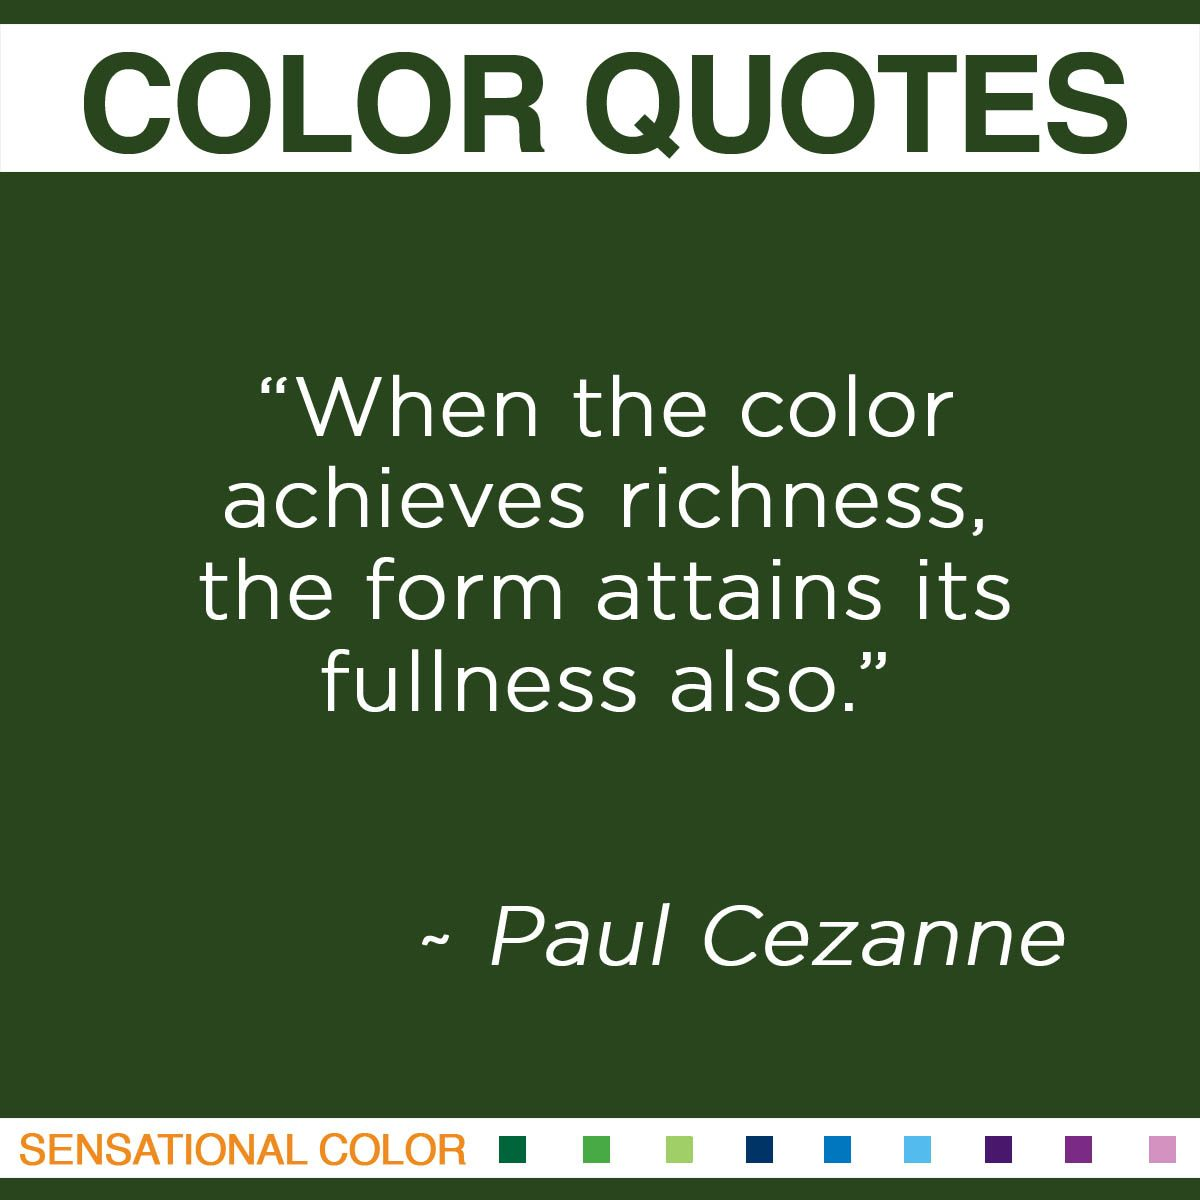 """When the color achieves richness, the form attains its fullness also."" - Paul Cezanne"